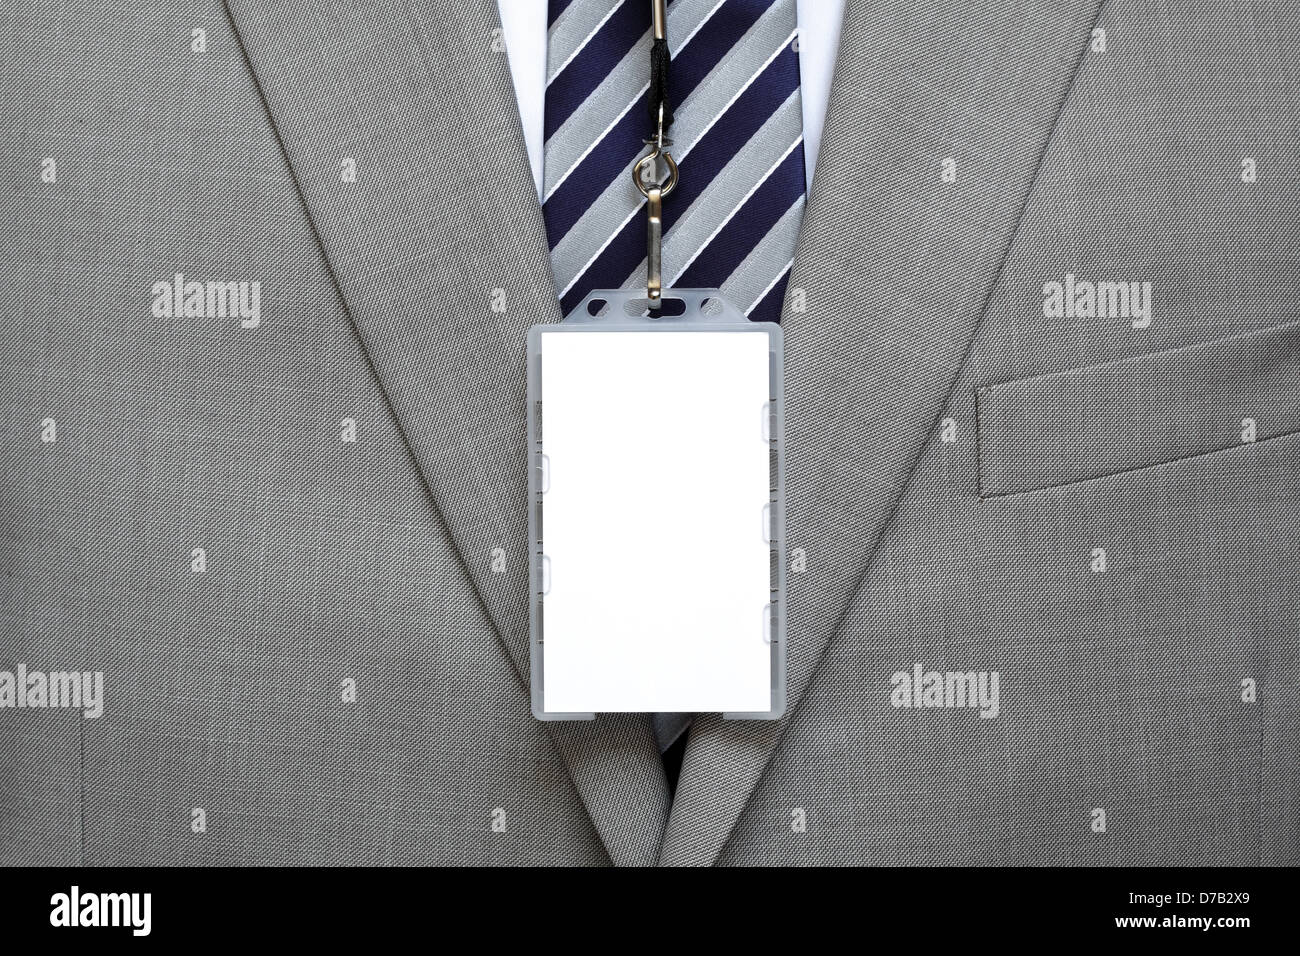 Blank name tag on suit - Stock Image